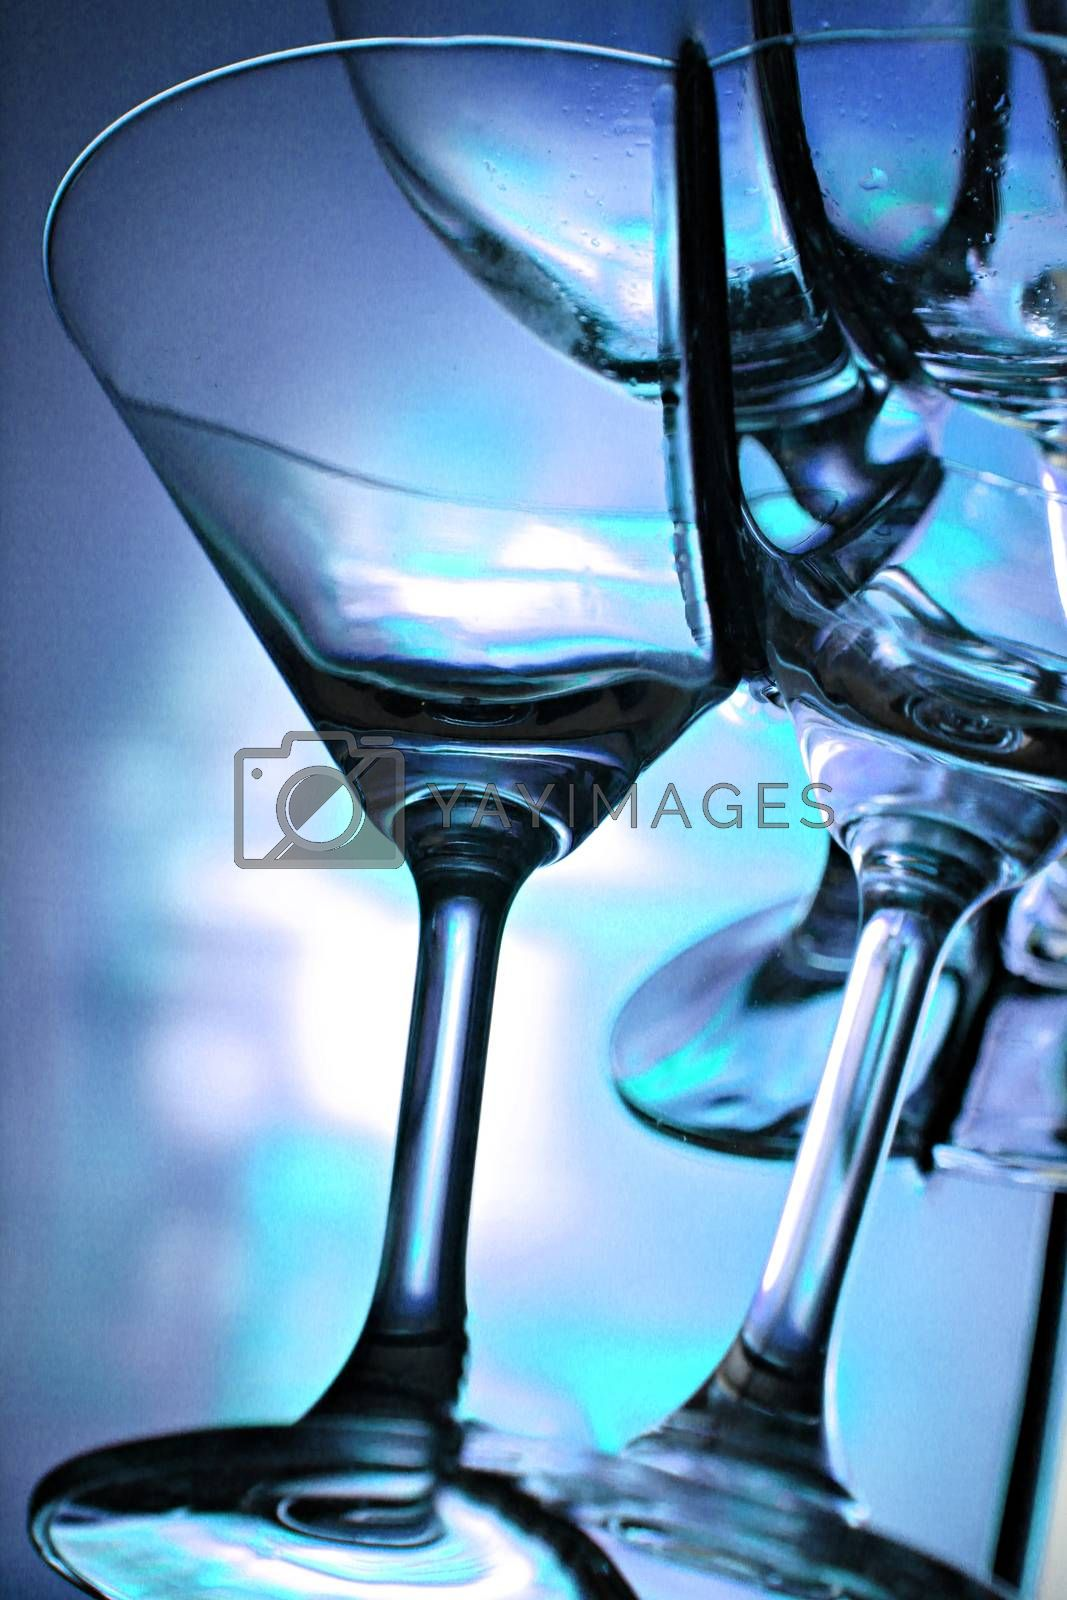 The Picture Focus Blue Background of wine glass in Basin.